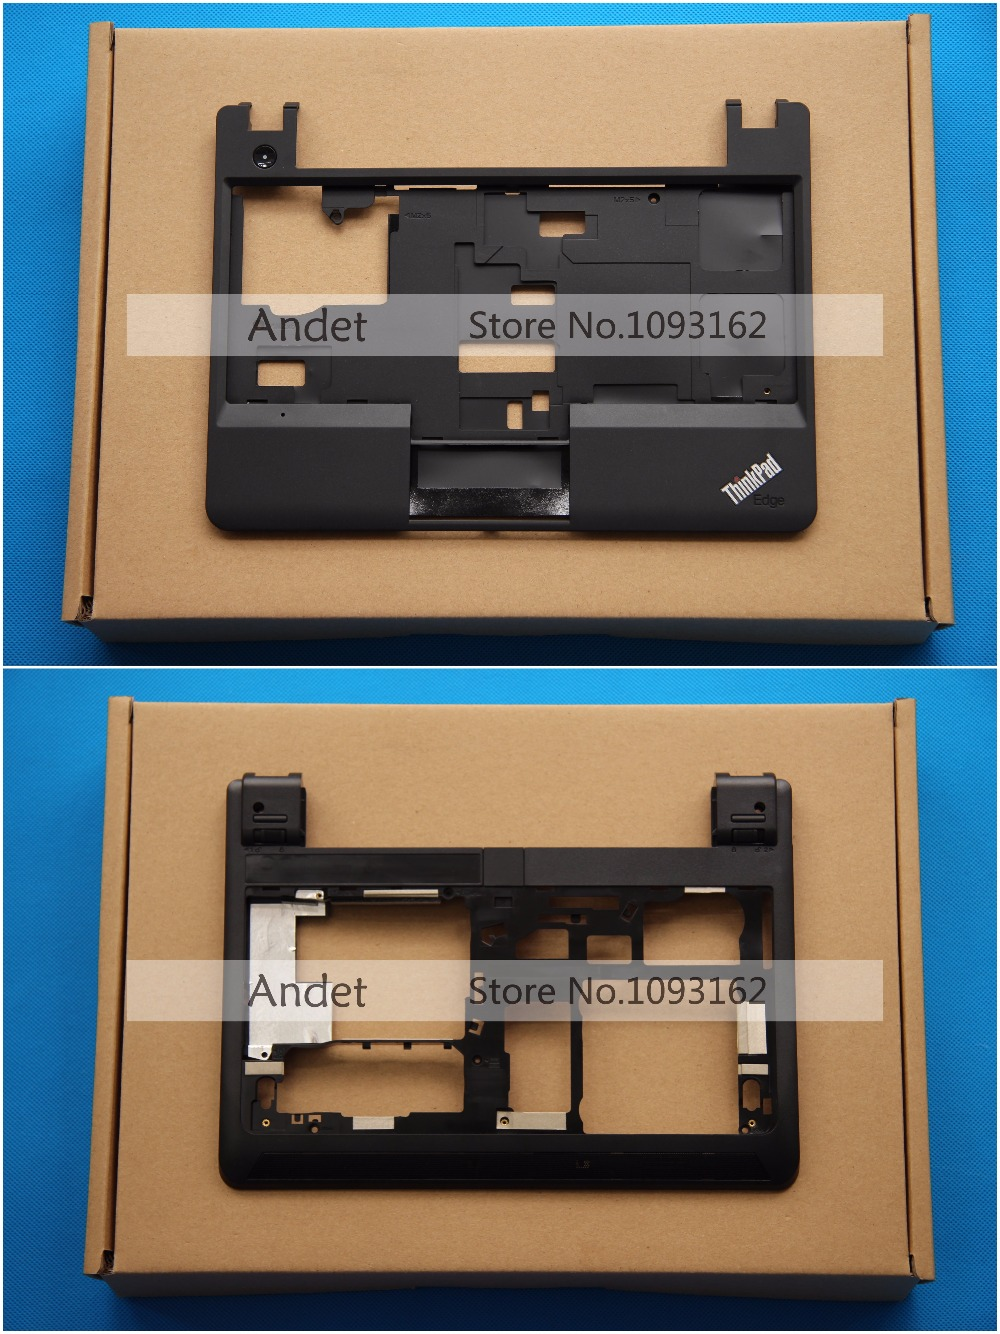 New Original Lenovo ThinkPad E130 E135 E145 Bottom Base Cover Palmrest Keyboard Bezel Upper Case without Touchpad 00JT244 00JT26 brand new laptop for dell inspiron 15 15r 5521 5537 3537 3521 lcd back cover upper cover bezel case palmrest cover bottom case